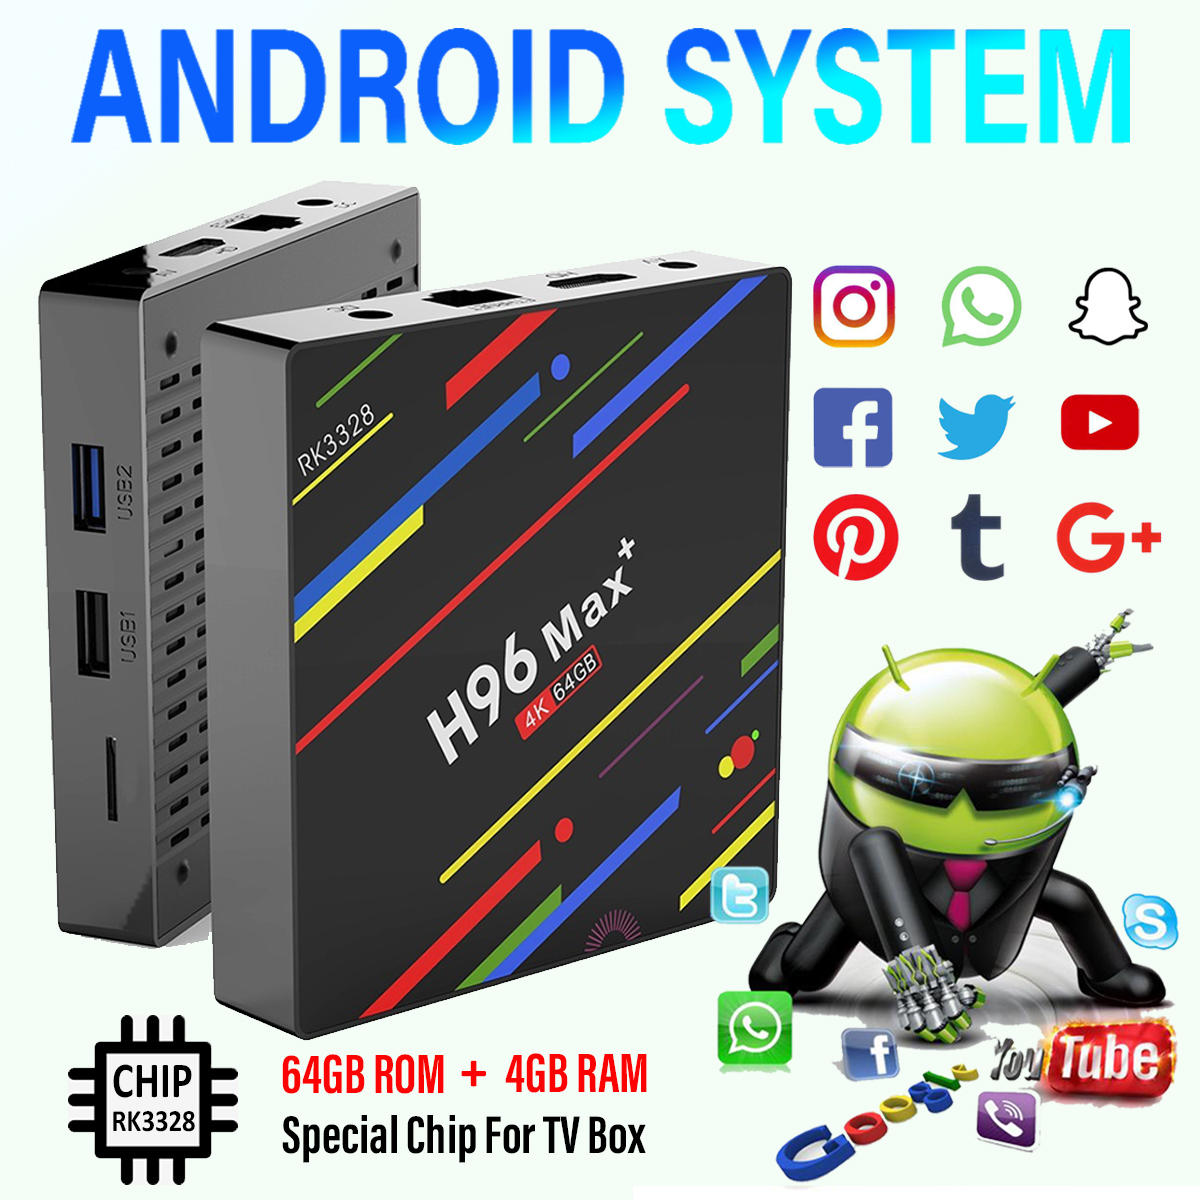 H96 Max Plus RK3328 4G/64G Android 8.1 USB3.0 Voice Control TV Box Support HD Netflix 4K Youtube -US